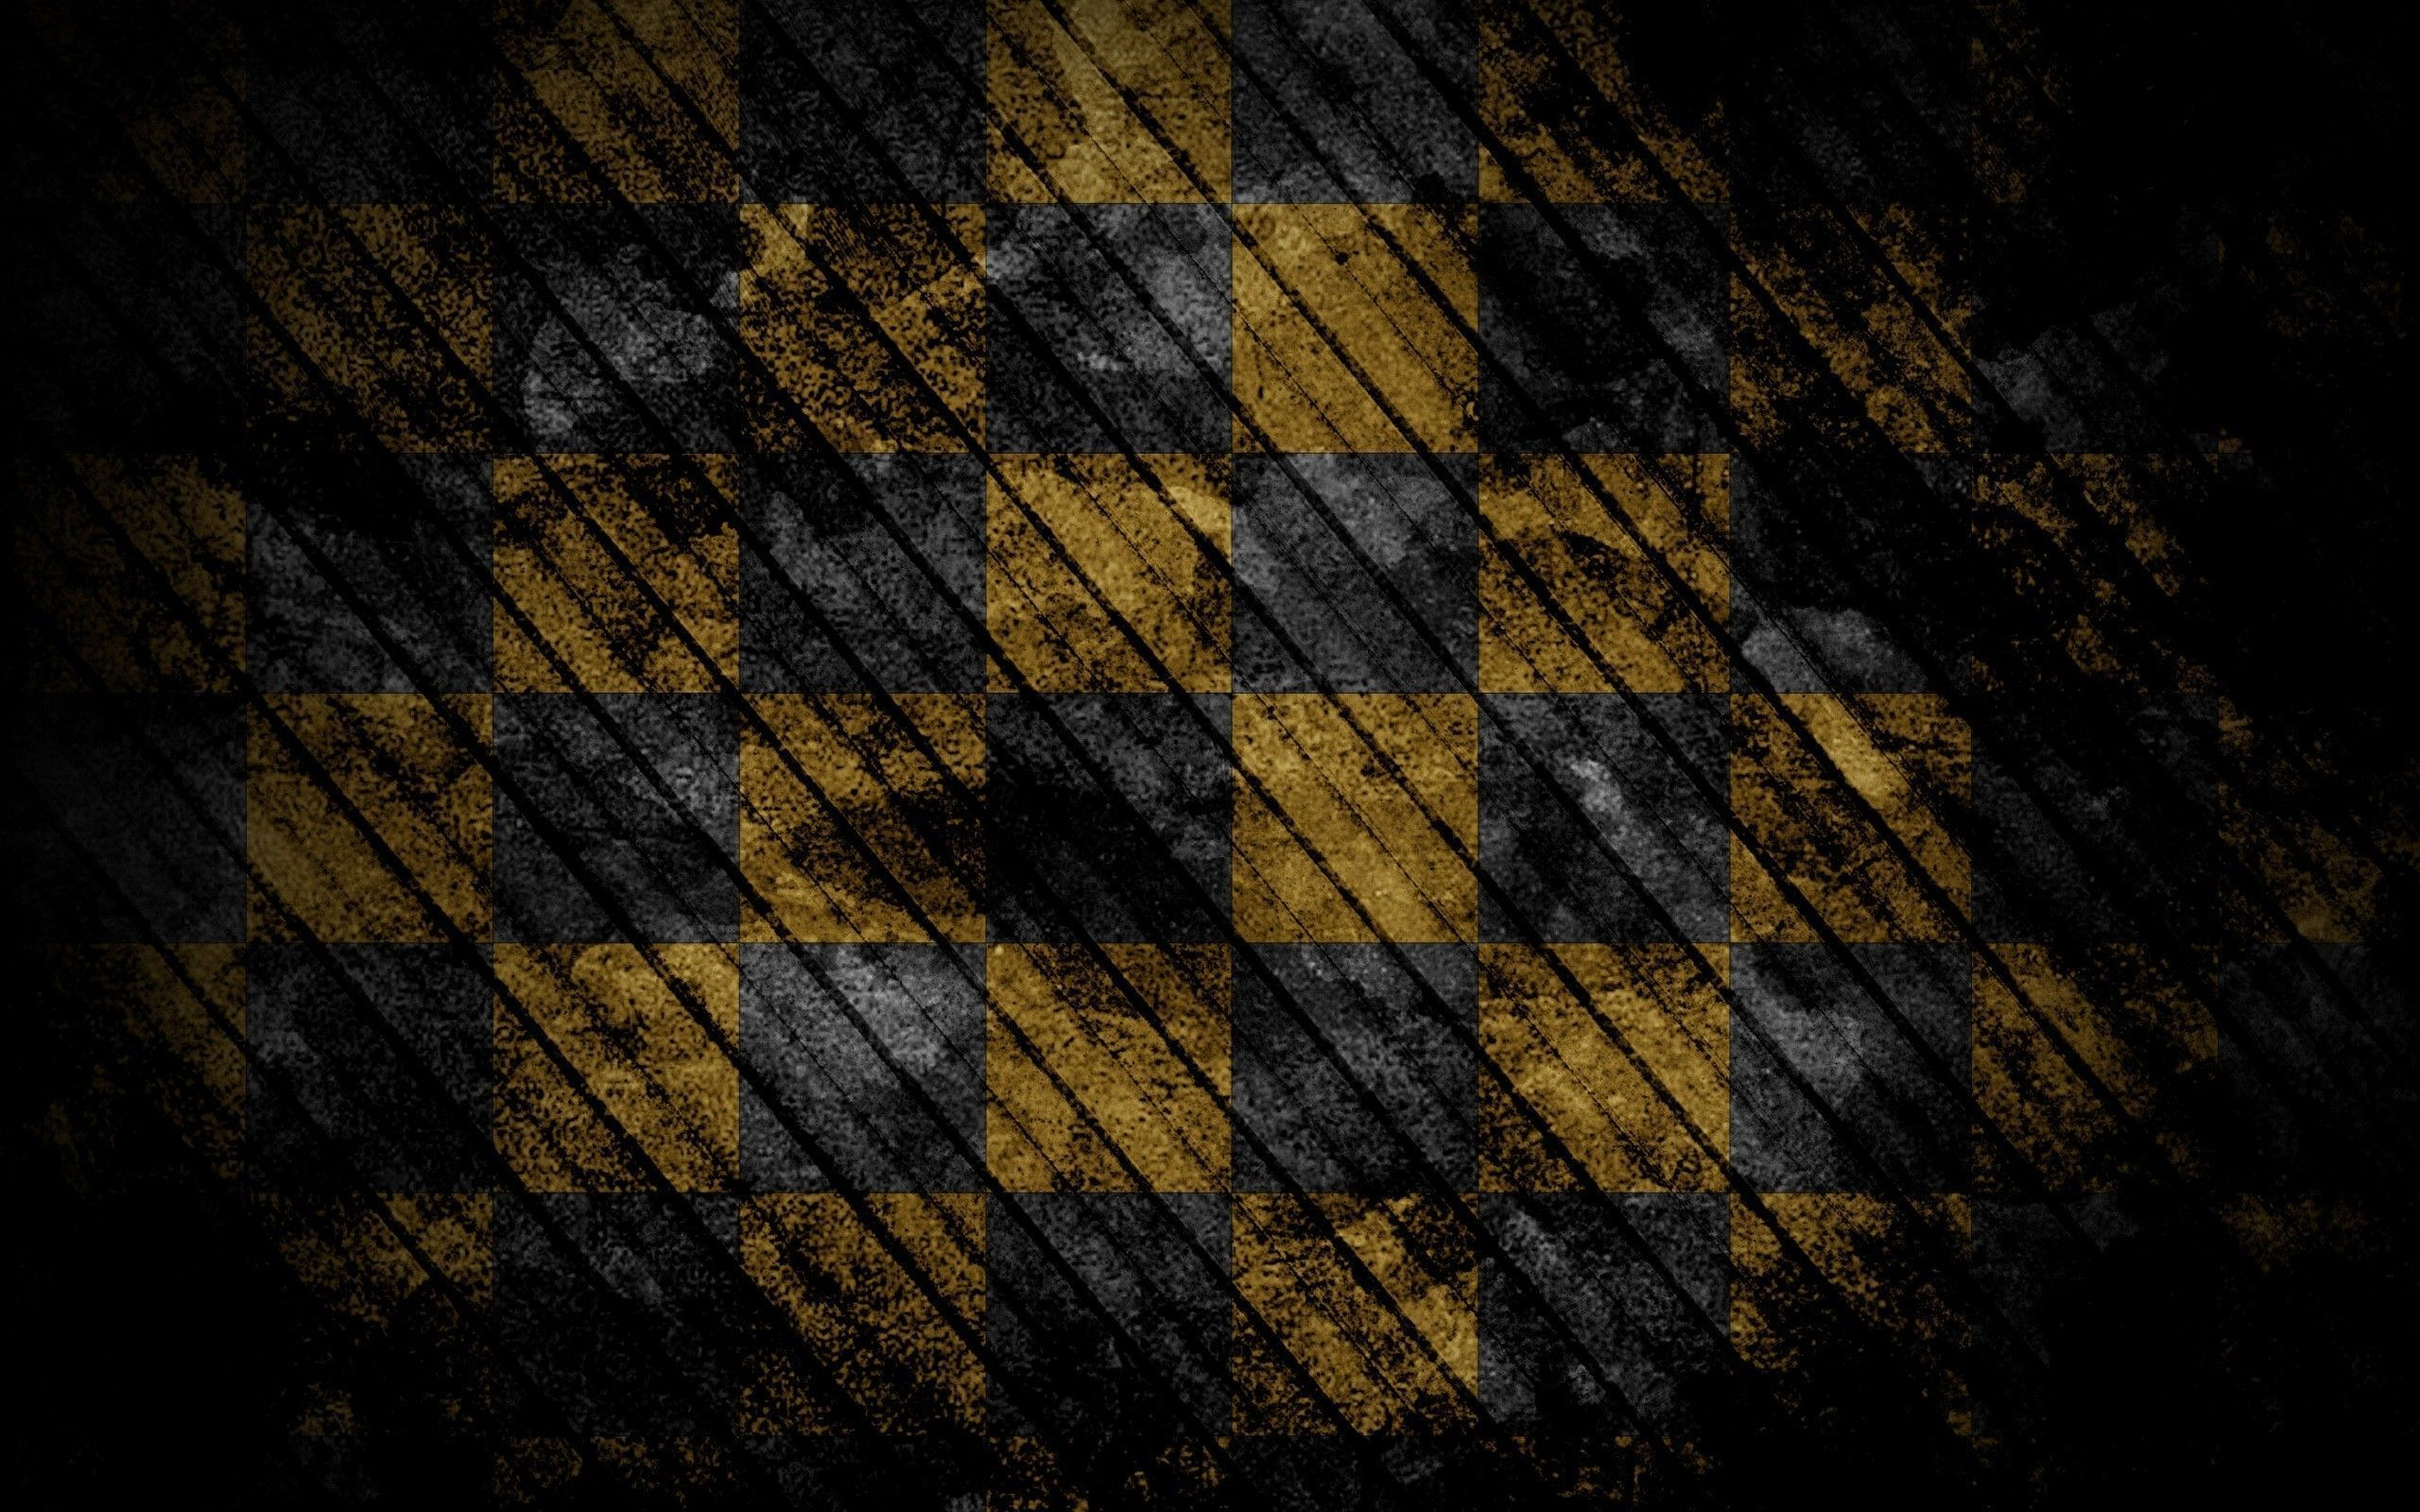 Hd Black And Yellow 4k Photo For Tablet Pc